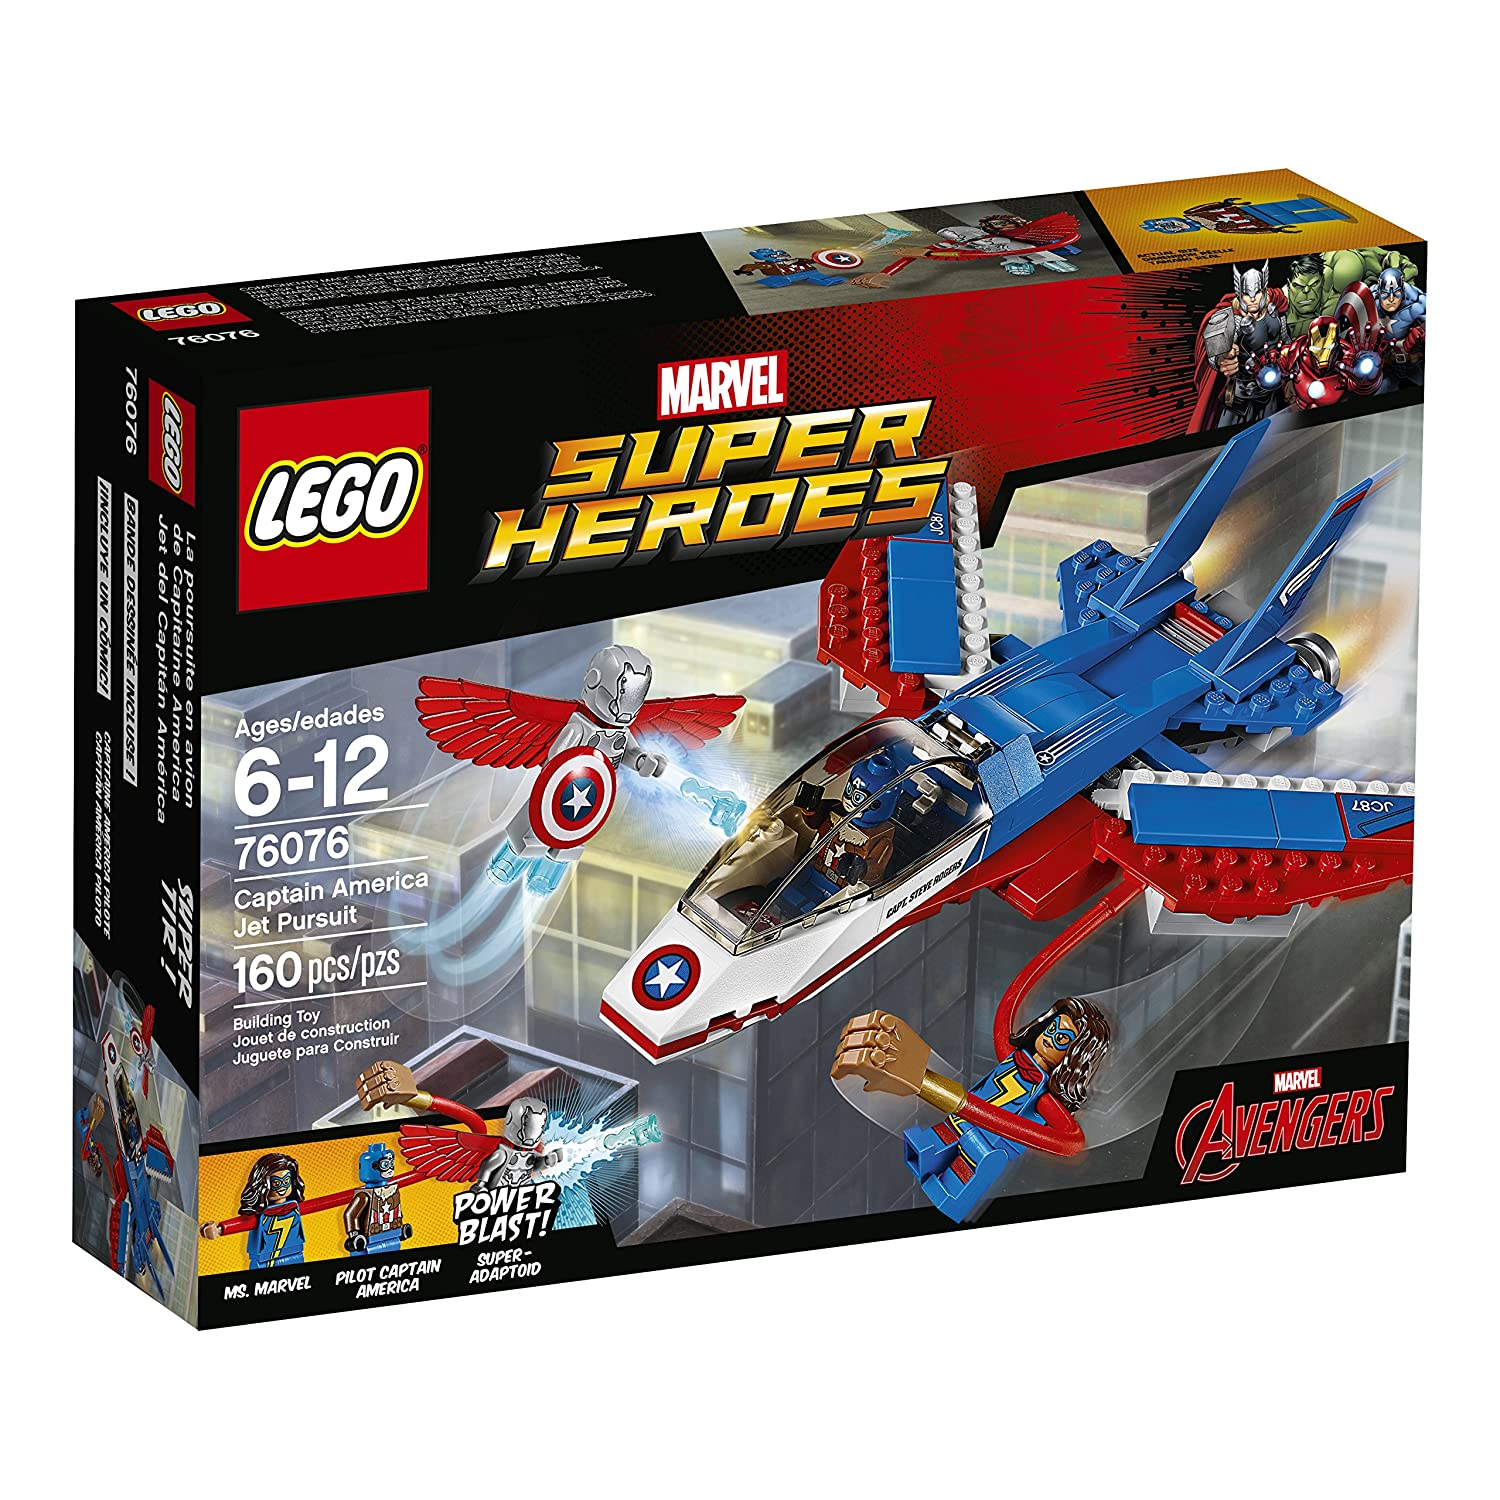 Top 9 Best LEGO Captain America Sets Reviews in 2019 3